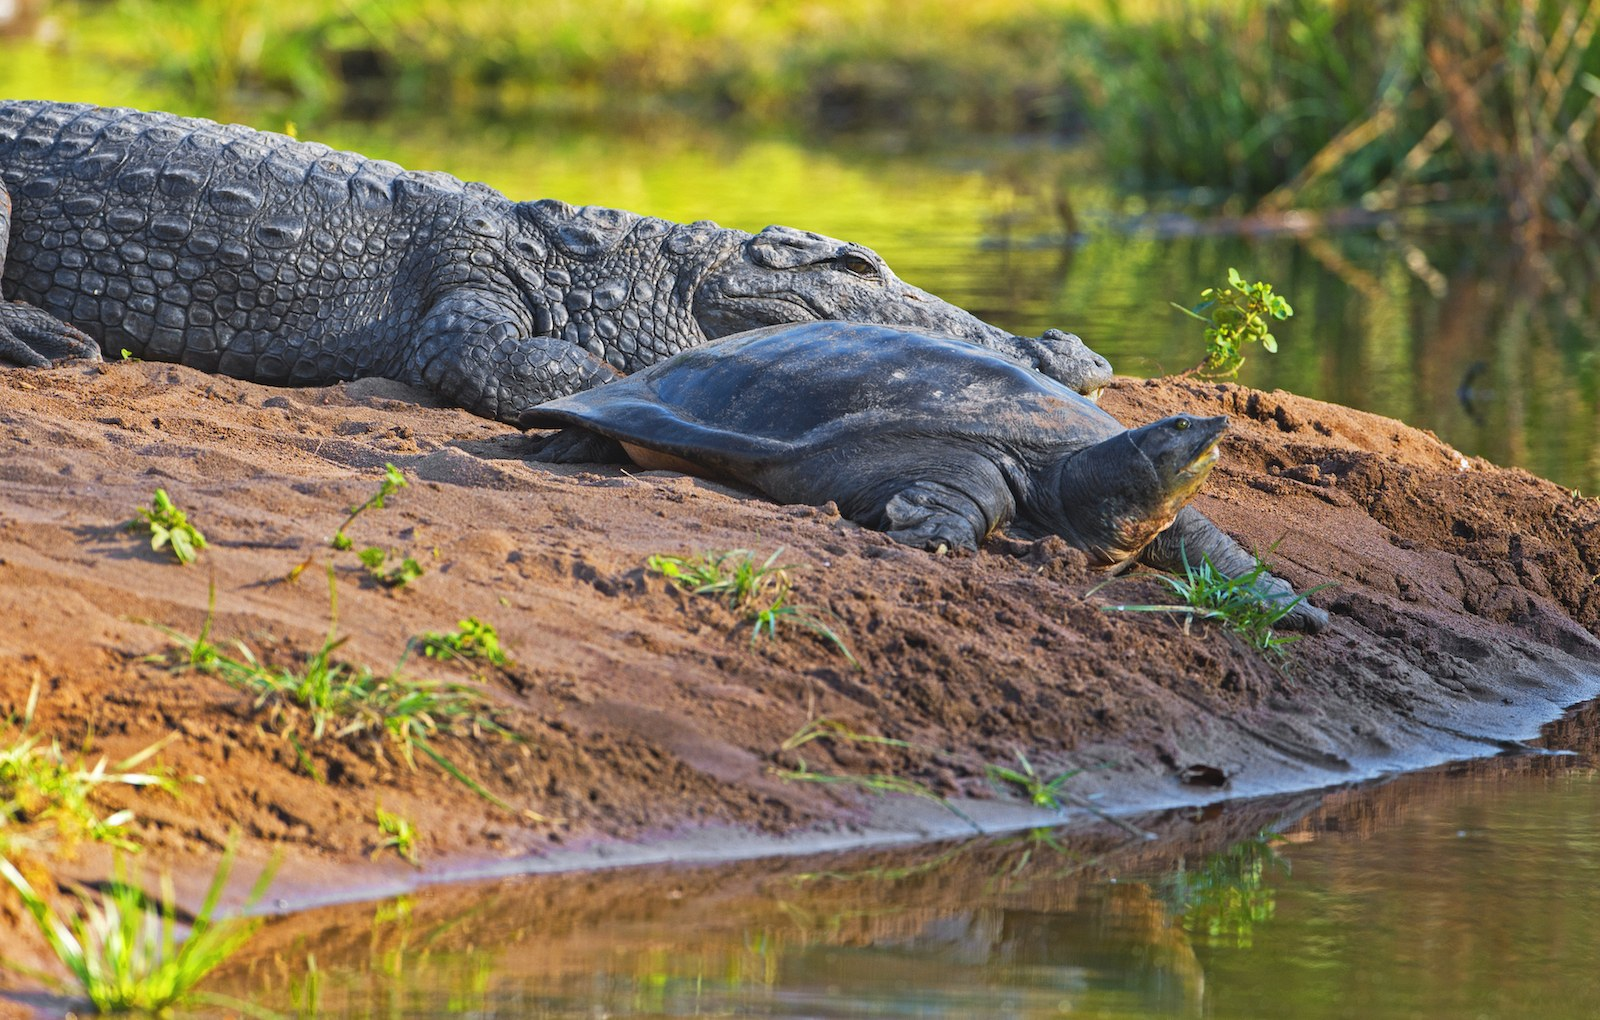 Once the sun is out, especially in winter, Ranthambore's shy reptiles, such as this mugger crocodile and Indian flapshell turtle, may put in an appearance in the open to bask in the sunshine. The rise in temperatures helps them regulate their body temperatures. Photo: Dhritiman Mukherjee